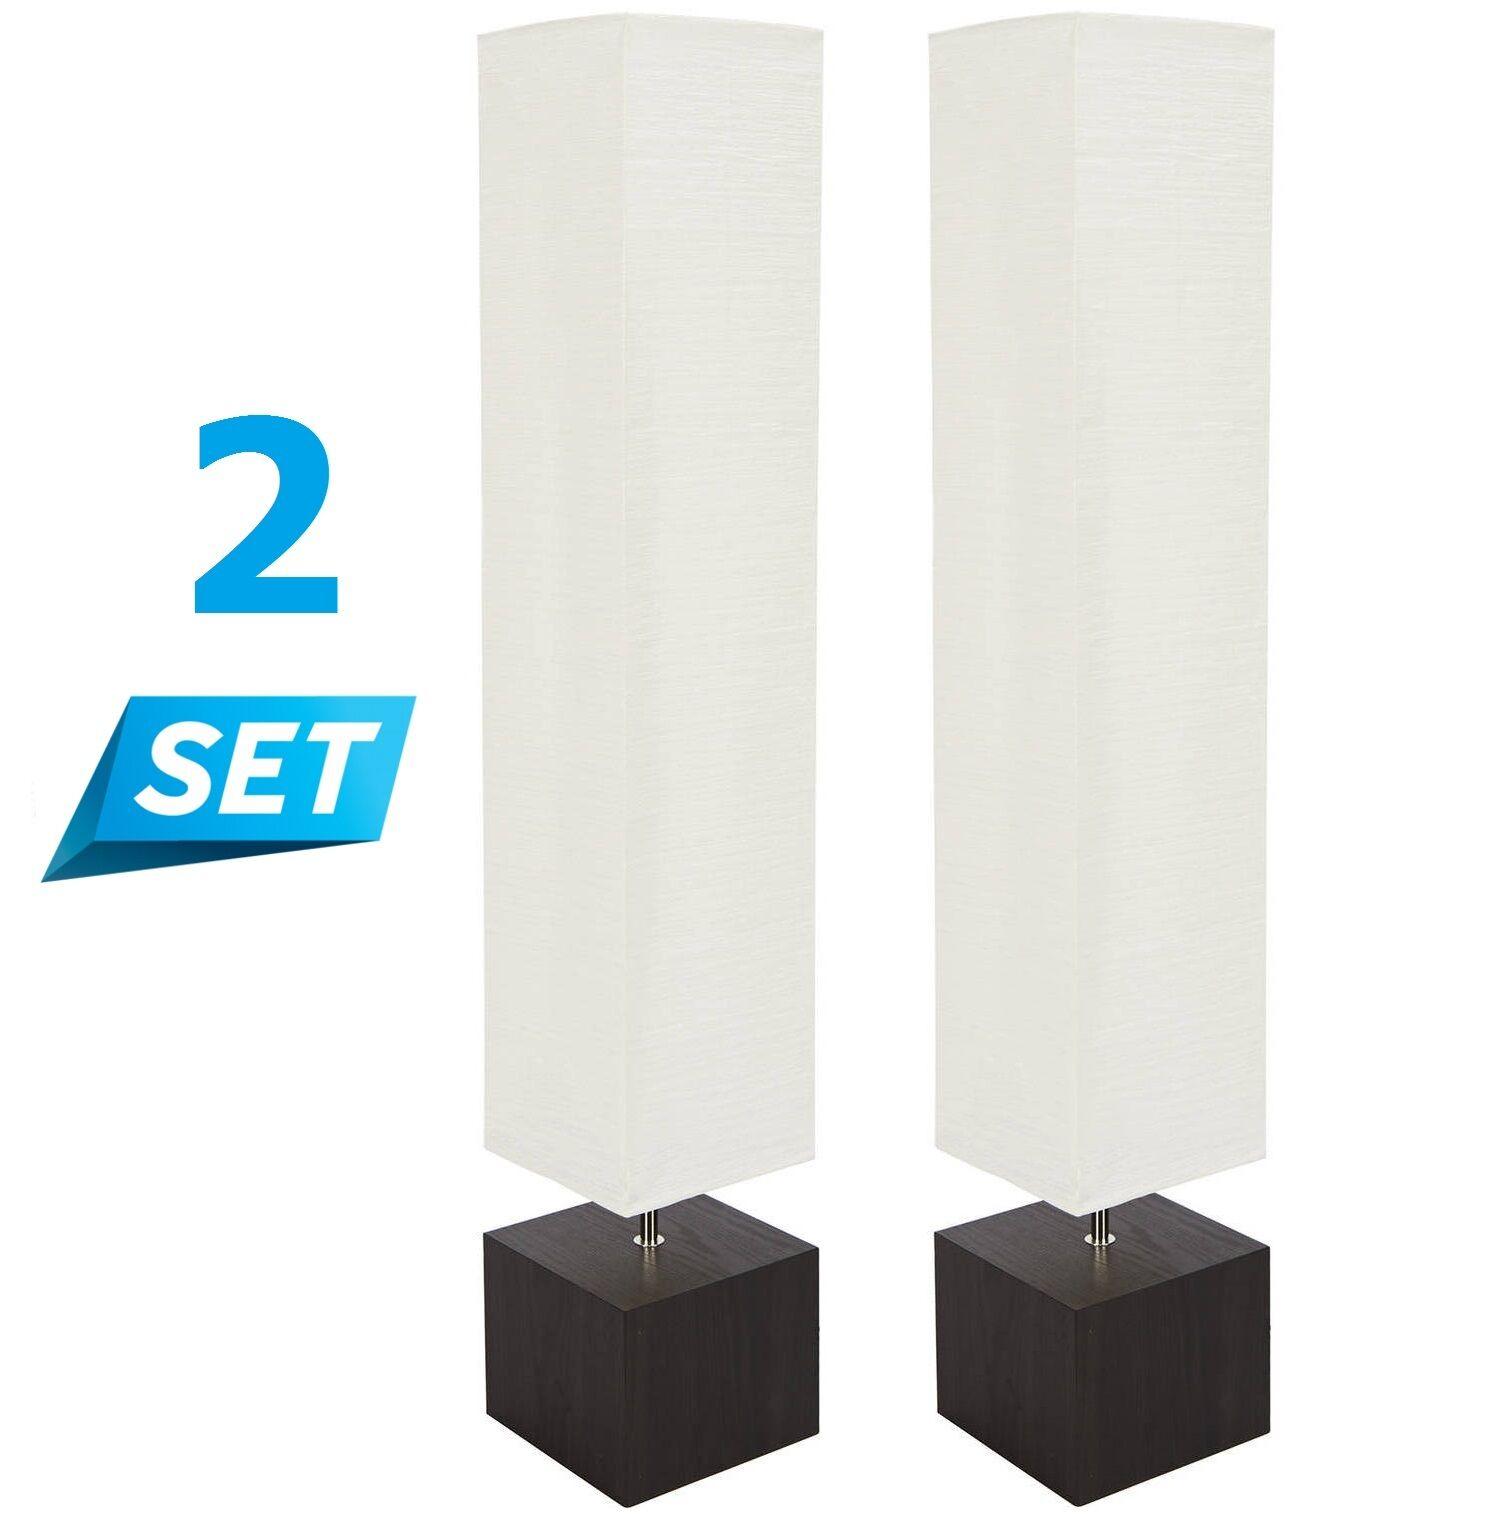 Details About 2 Set Rice Paper Floor Lamp White Shade Wood Square Living Room Office Pack Pair